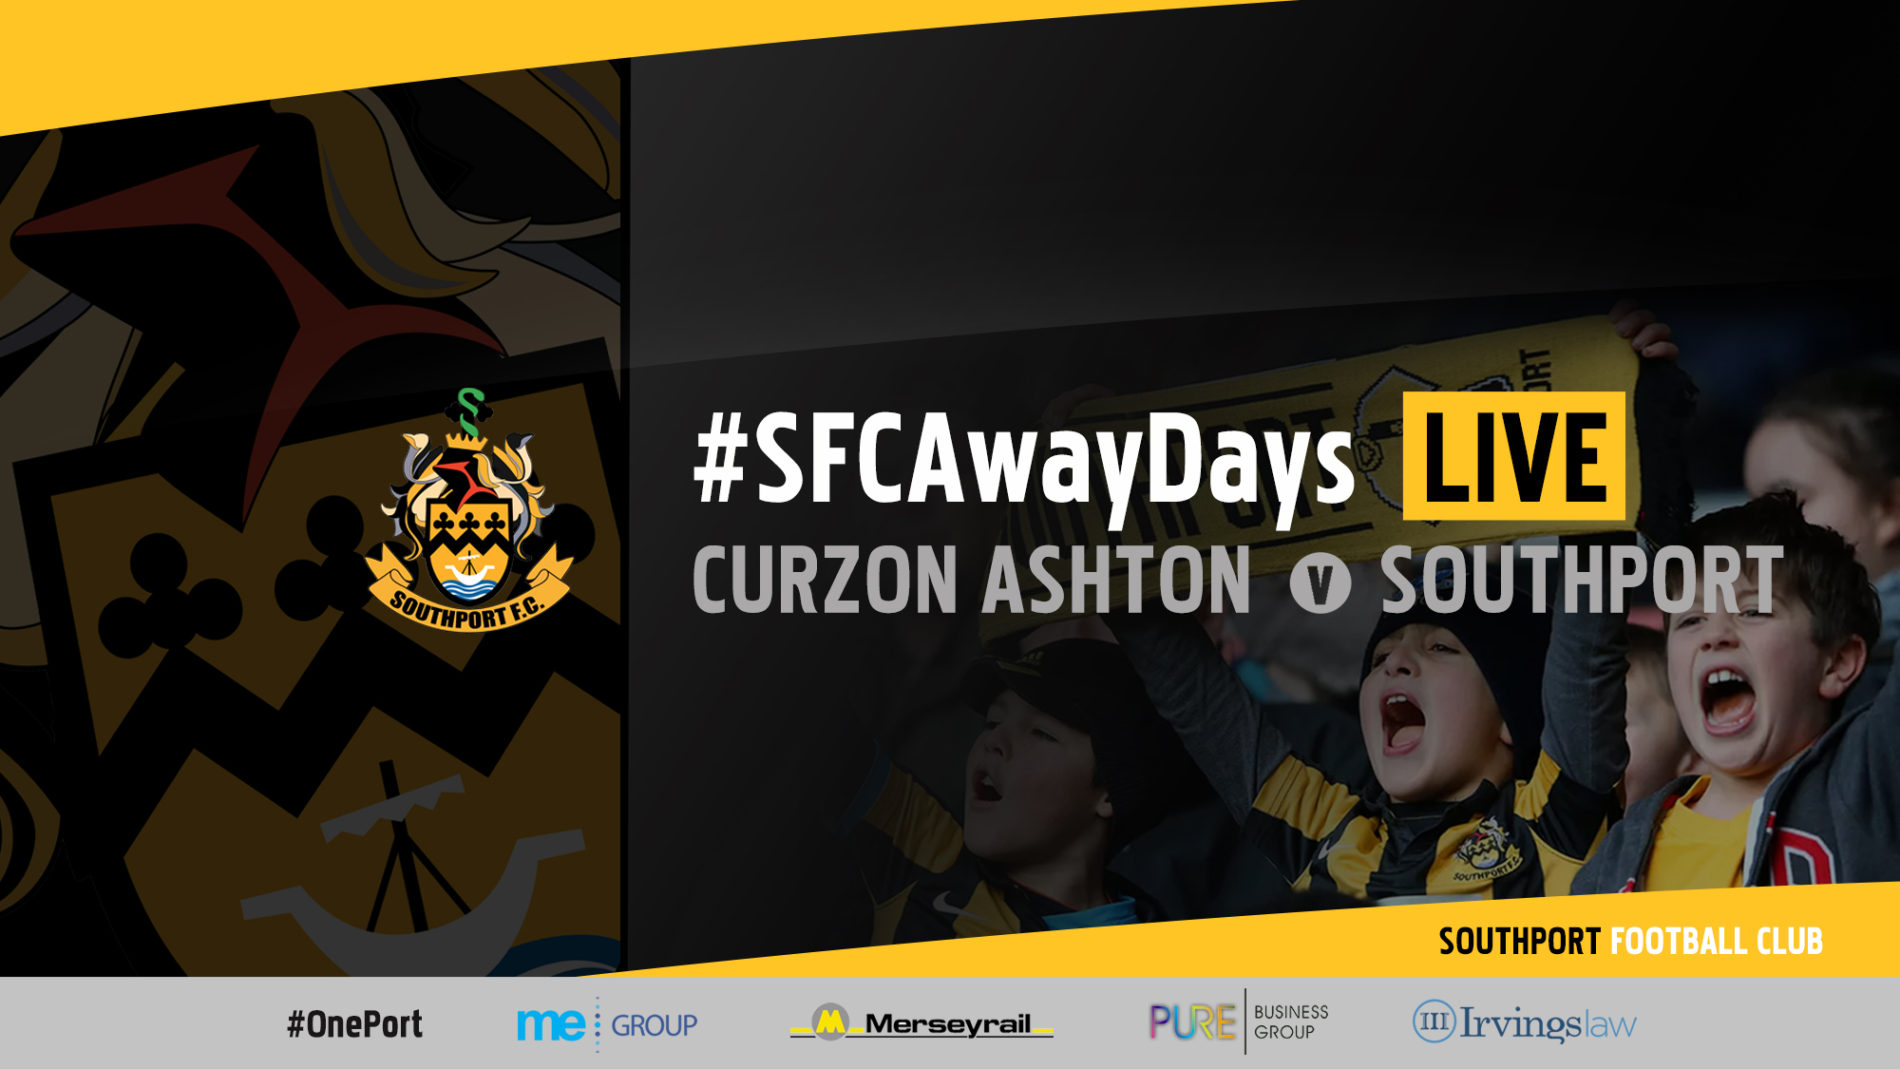 #SFCAwayDays LIVE | Curzon Ashton vs Southport